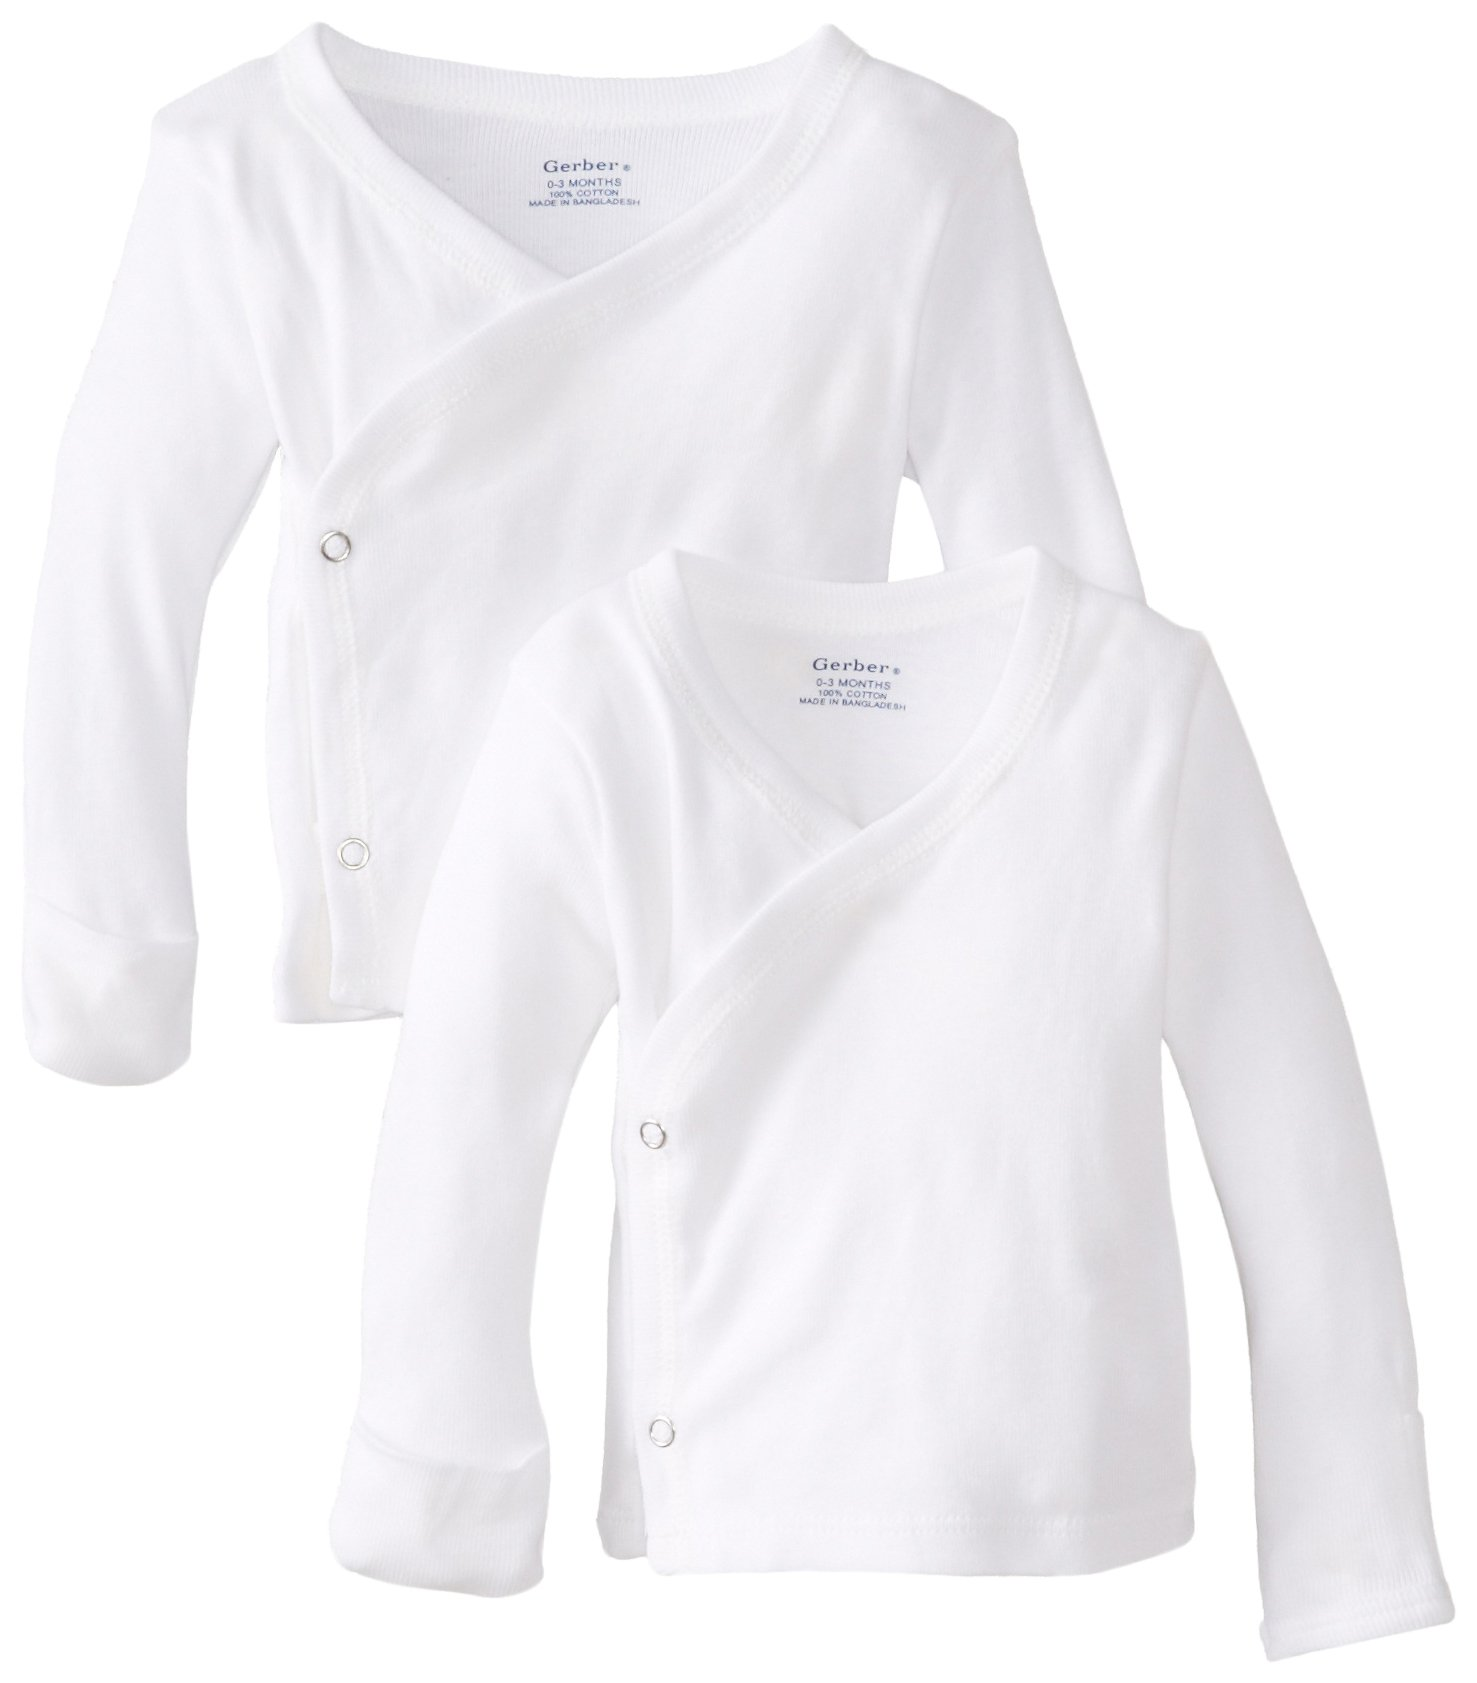 Gerber Unisex Baby 2 Pack Long-Sleeve Shirts with Side Snap and Mitten Cuffs